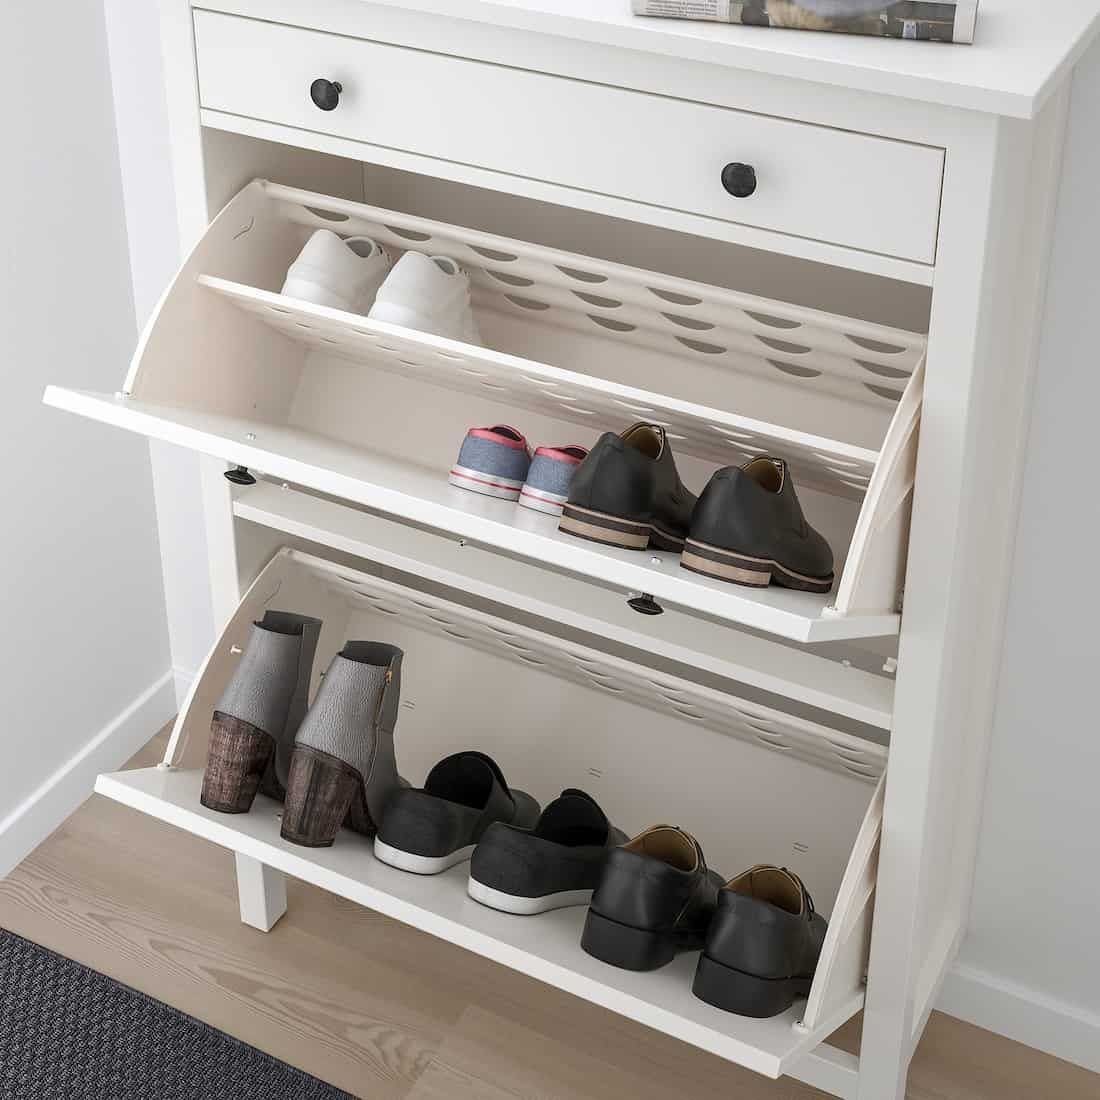 27 Creative And Efficient Ways To Store Your Shoes In 2020 Ikea Hemnes Shoe Cabinet Hemnes Shoe Cabinet Shoe Cabinet